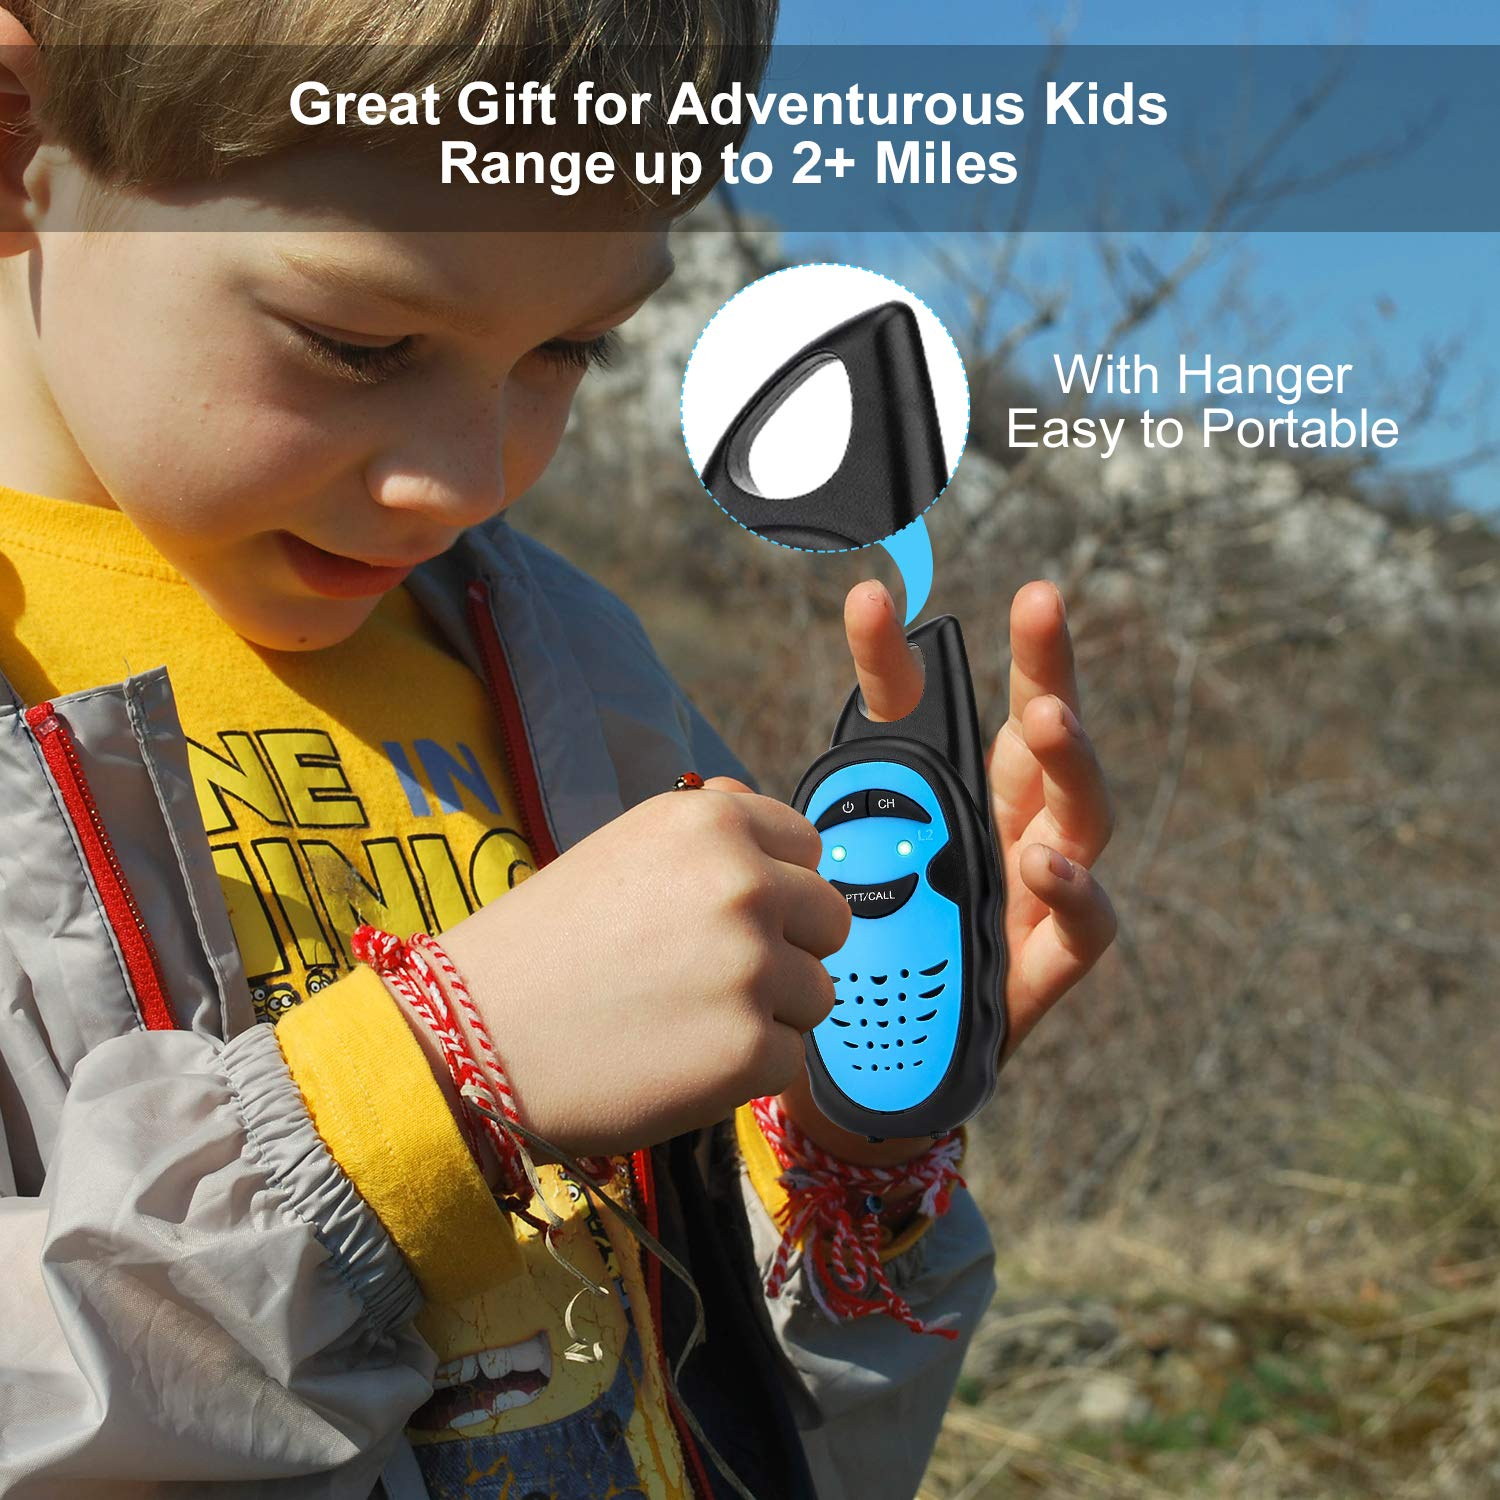 WES TAYIN Upgraded Walkie Talkies for Kids, Up to 2-Mile and 3 Channels Easy to Use Walkie Talkies for Toddlers, Toy Walkie Talkies for Little Hands Boys Gifts by WES TAYIN (Image #5)